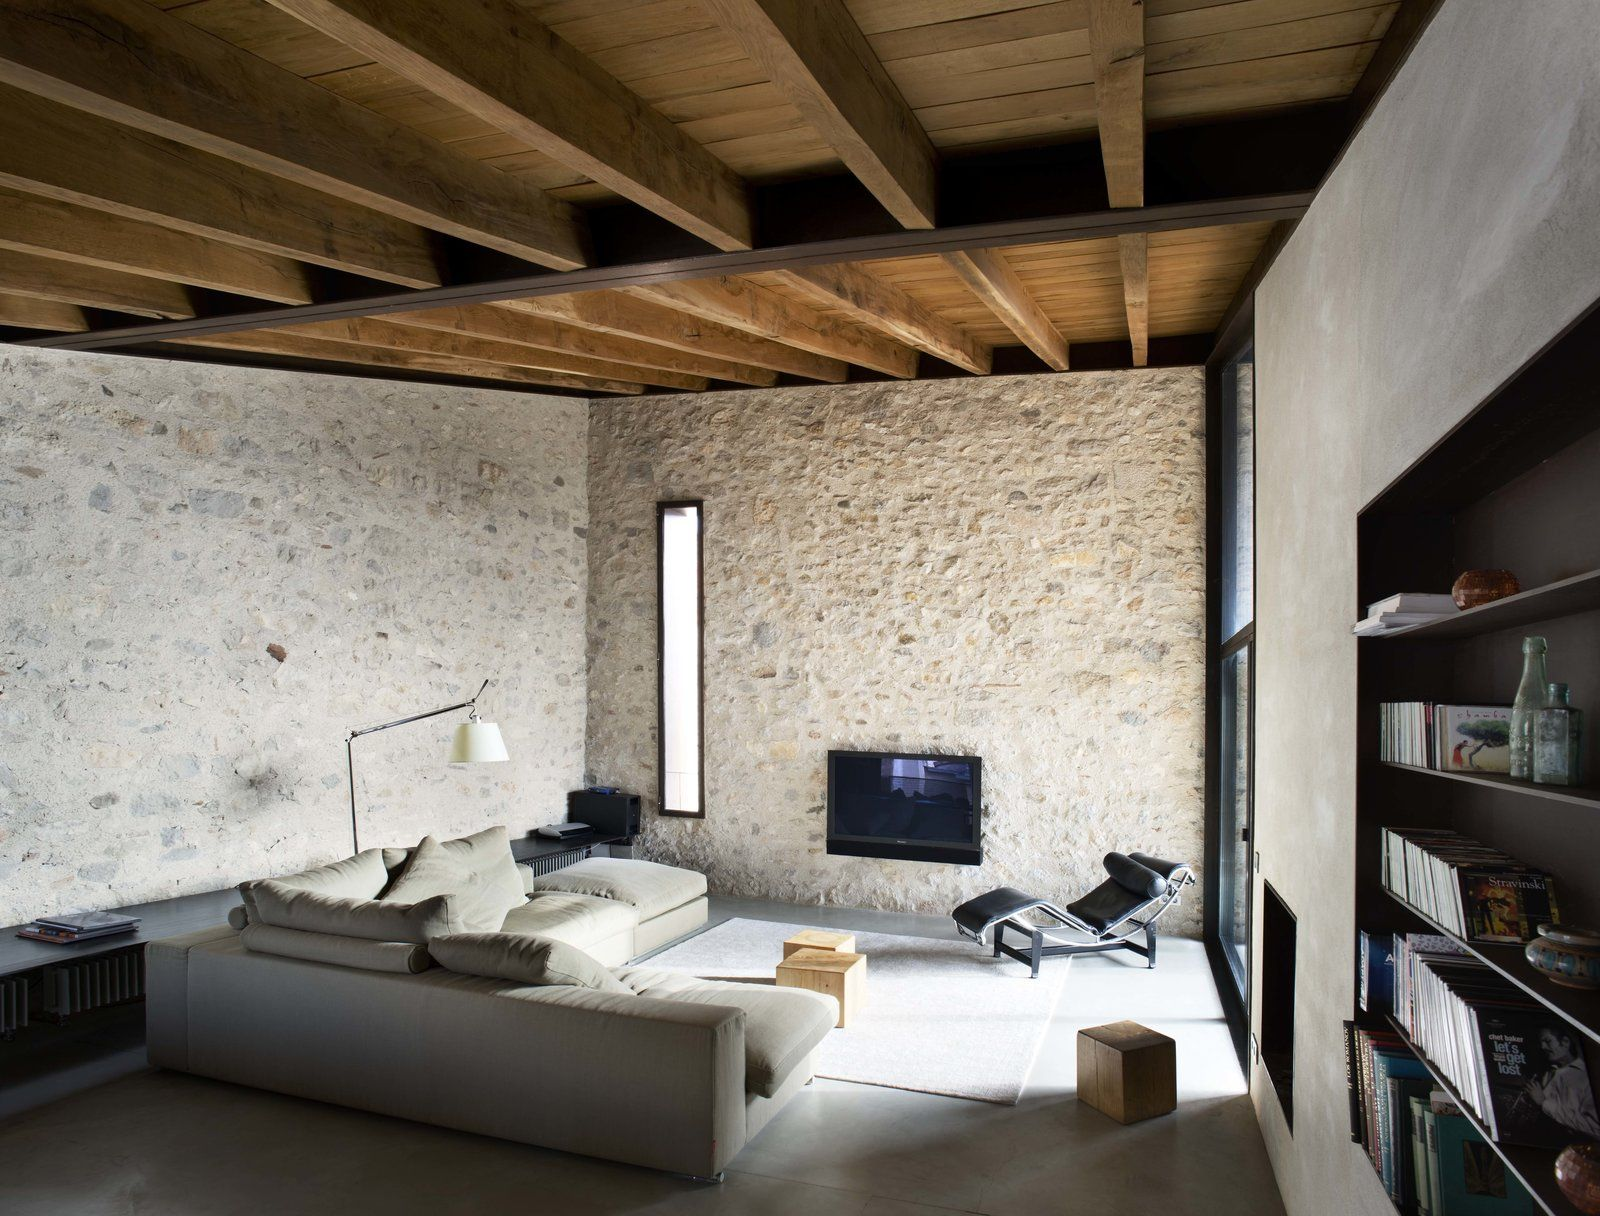 A spanish architect transforms a medieval townhouse into a stunning rental photo 8 of 14 contemporary materials such as concrete and steel are a